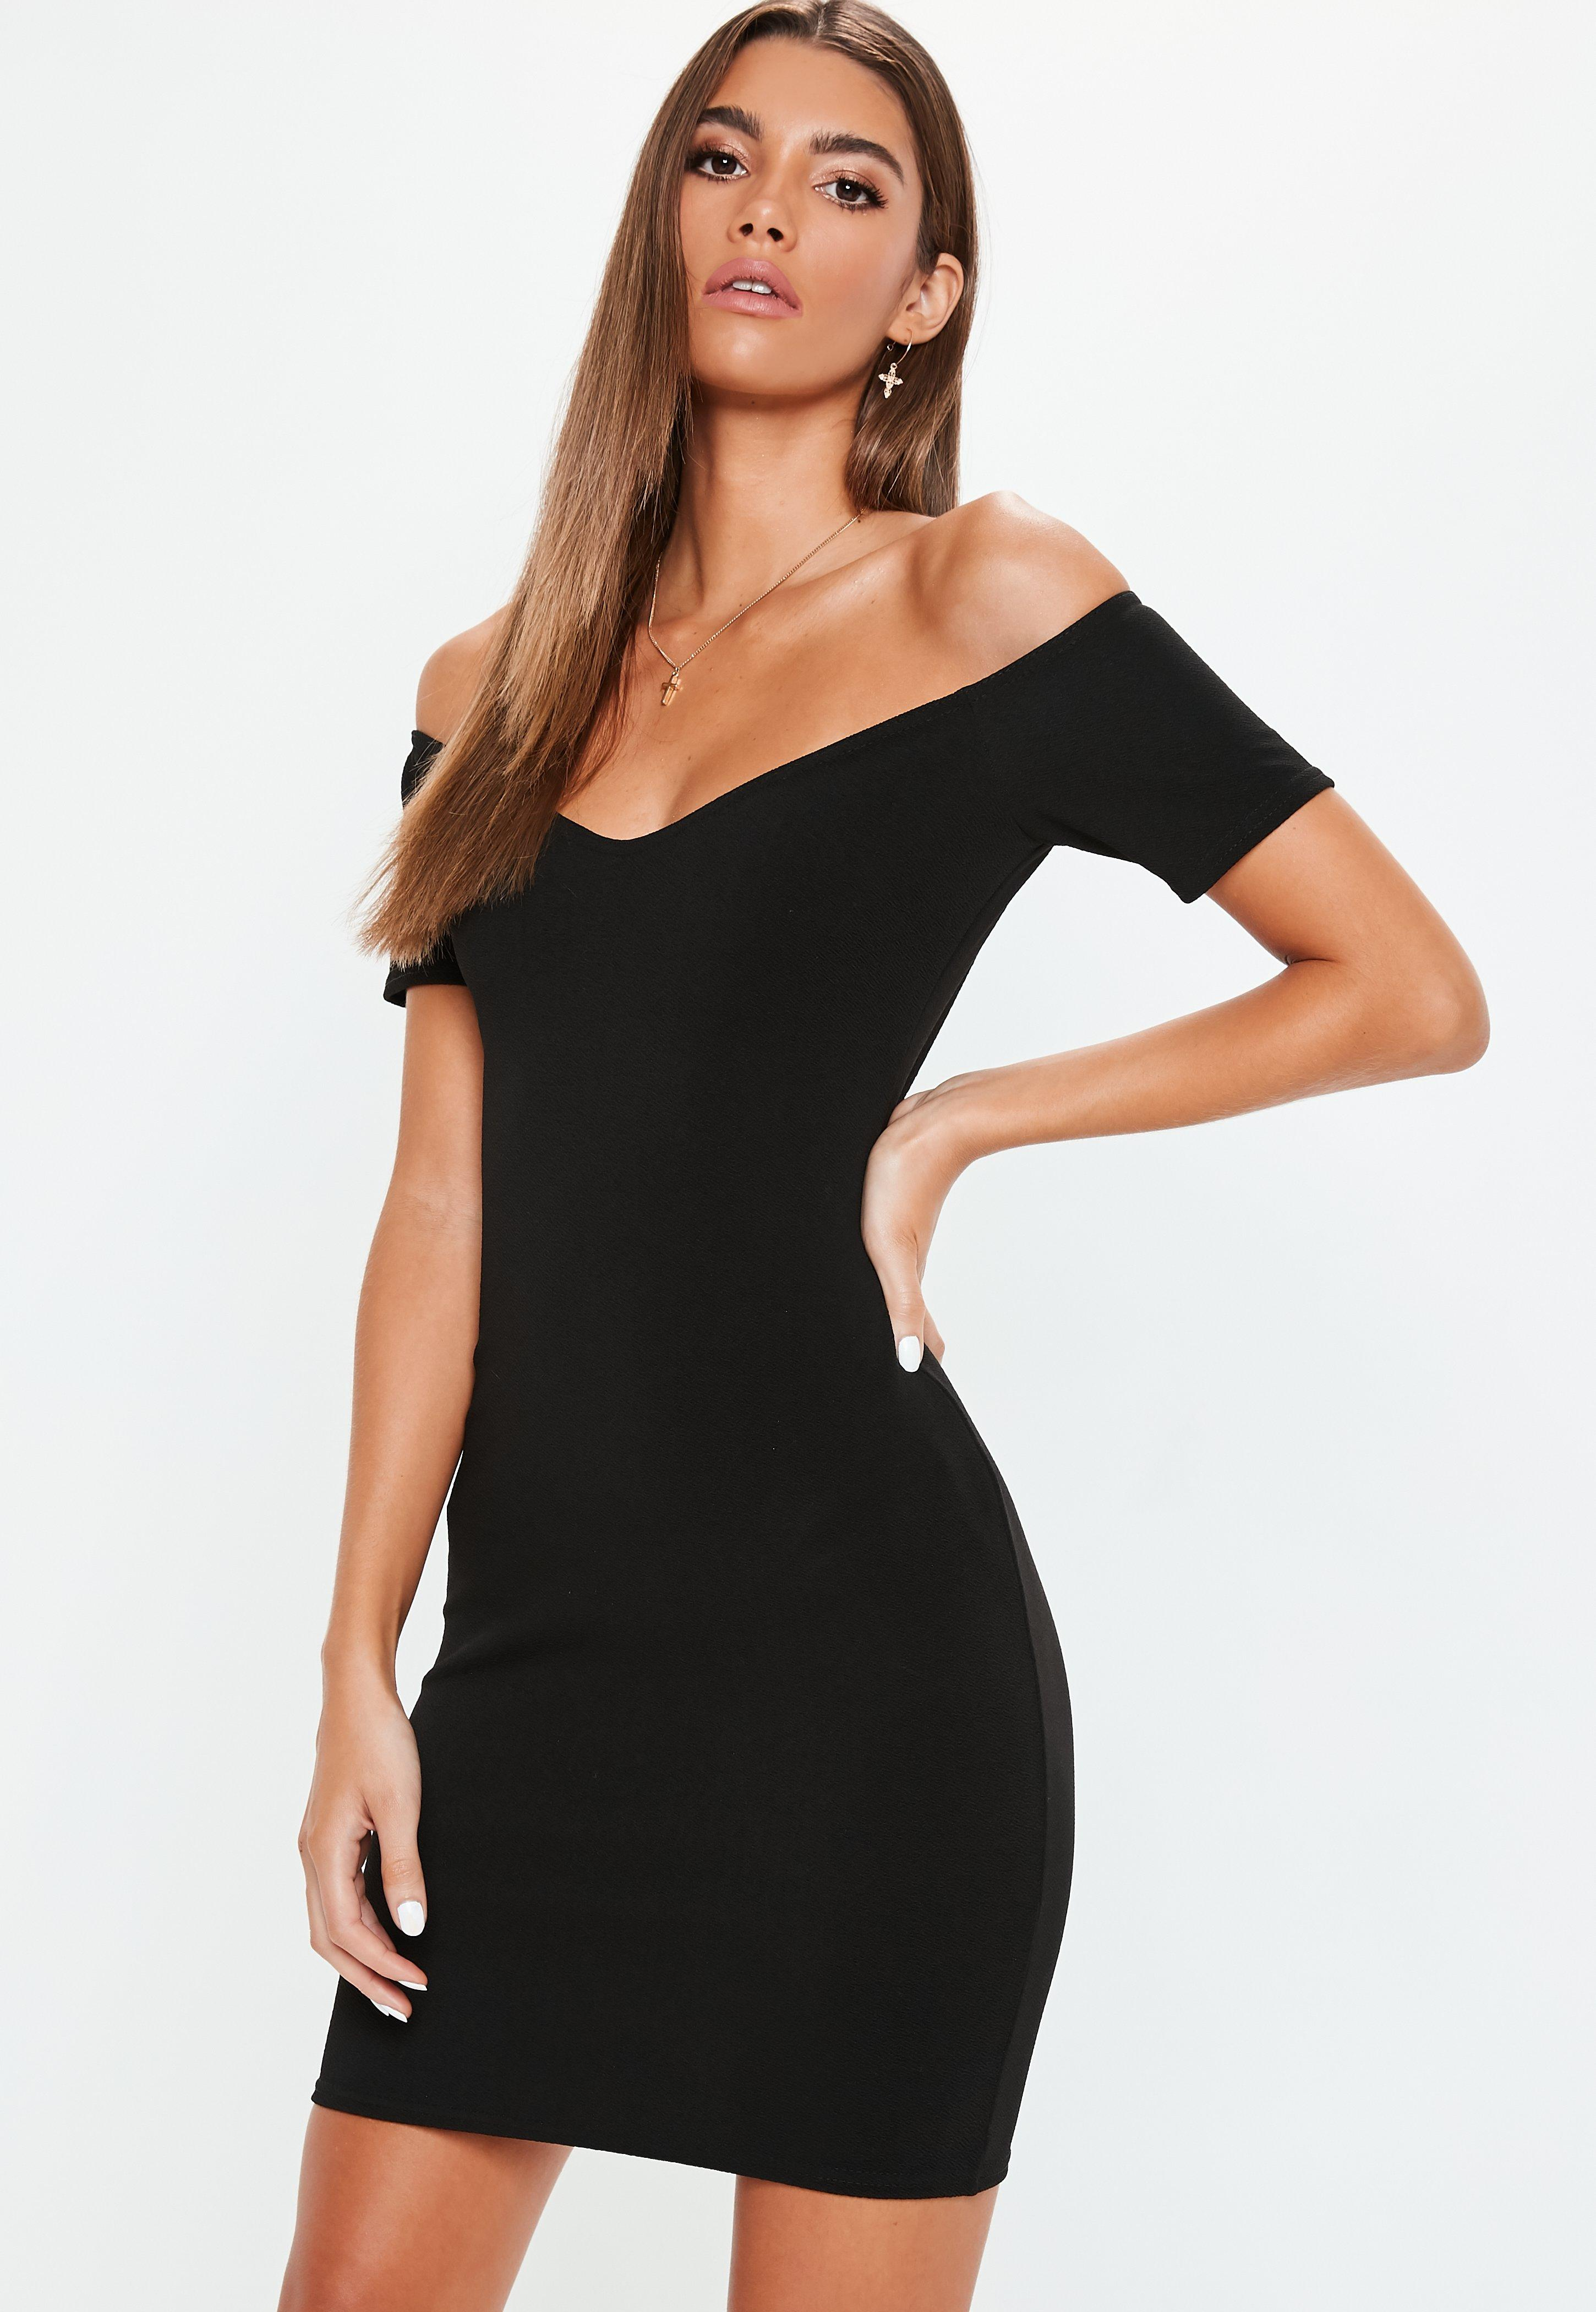 Robe moulante   Robe moulante sexy - Missguided ad2ba75d4461